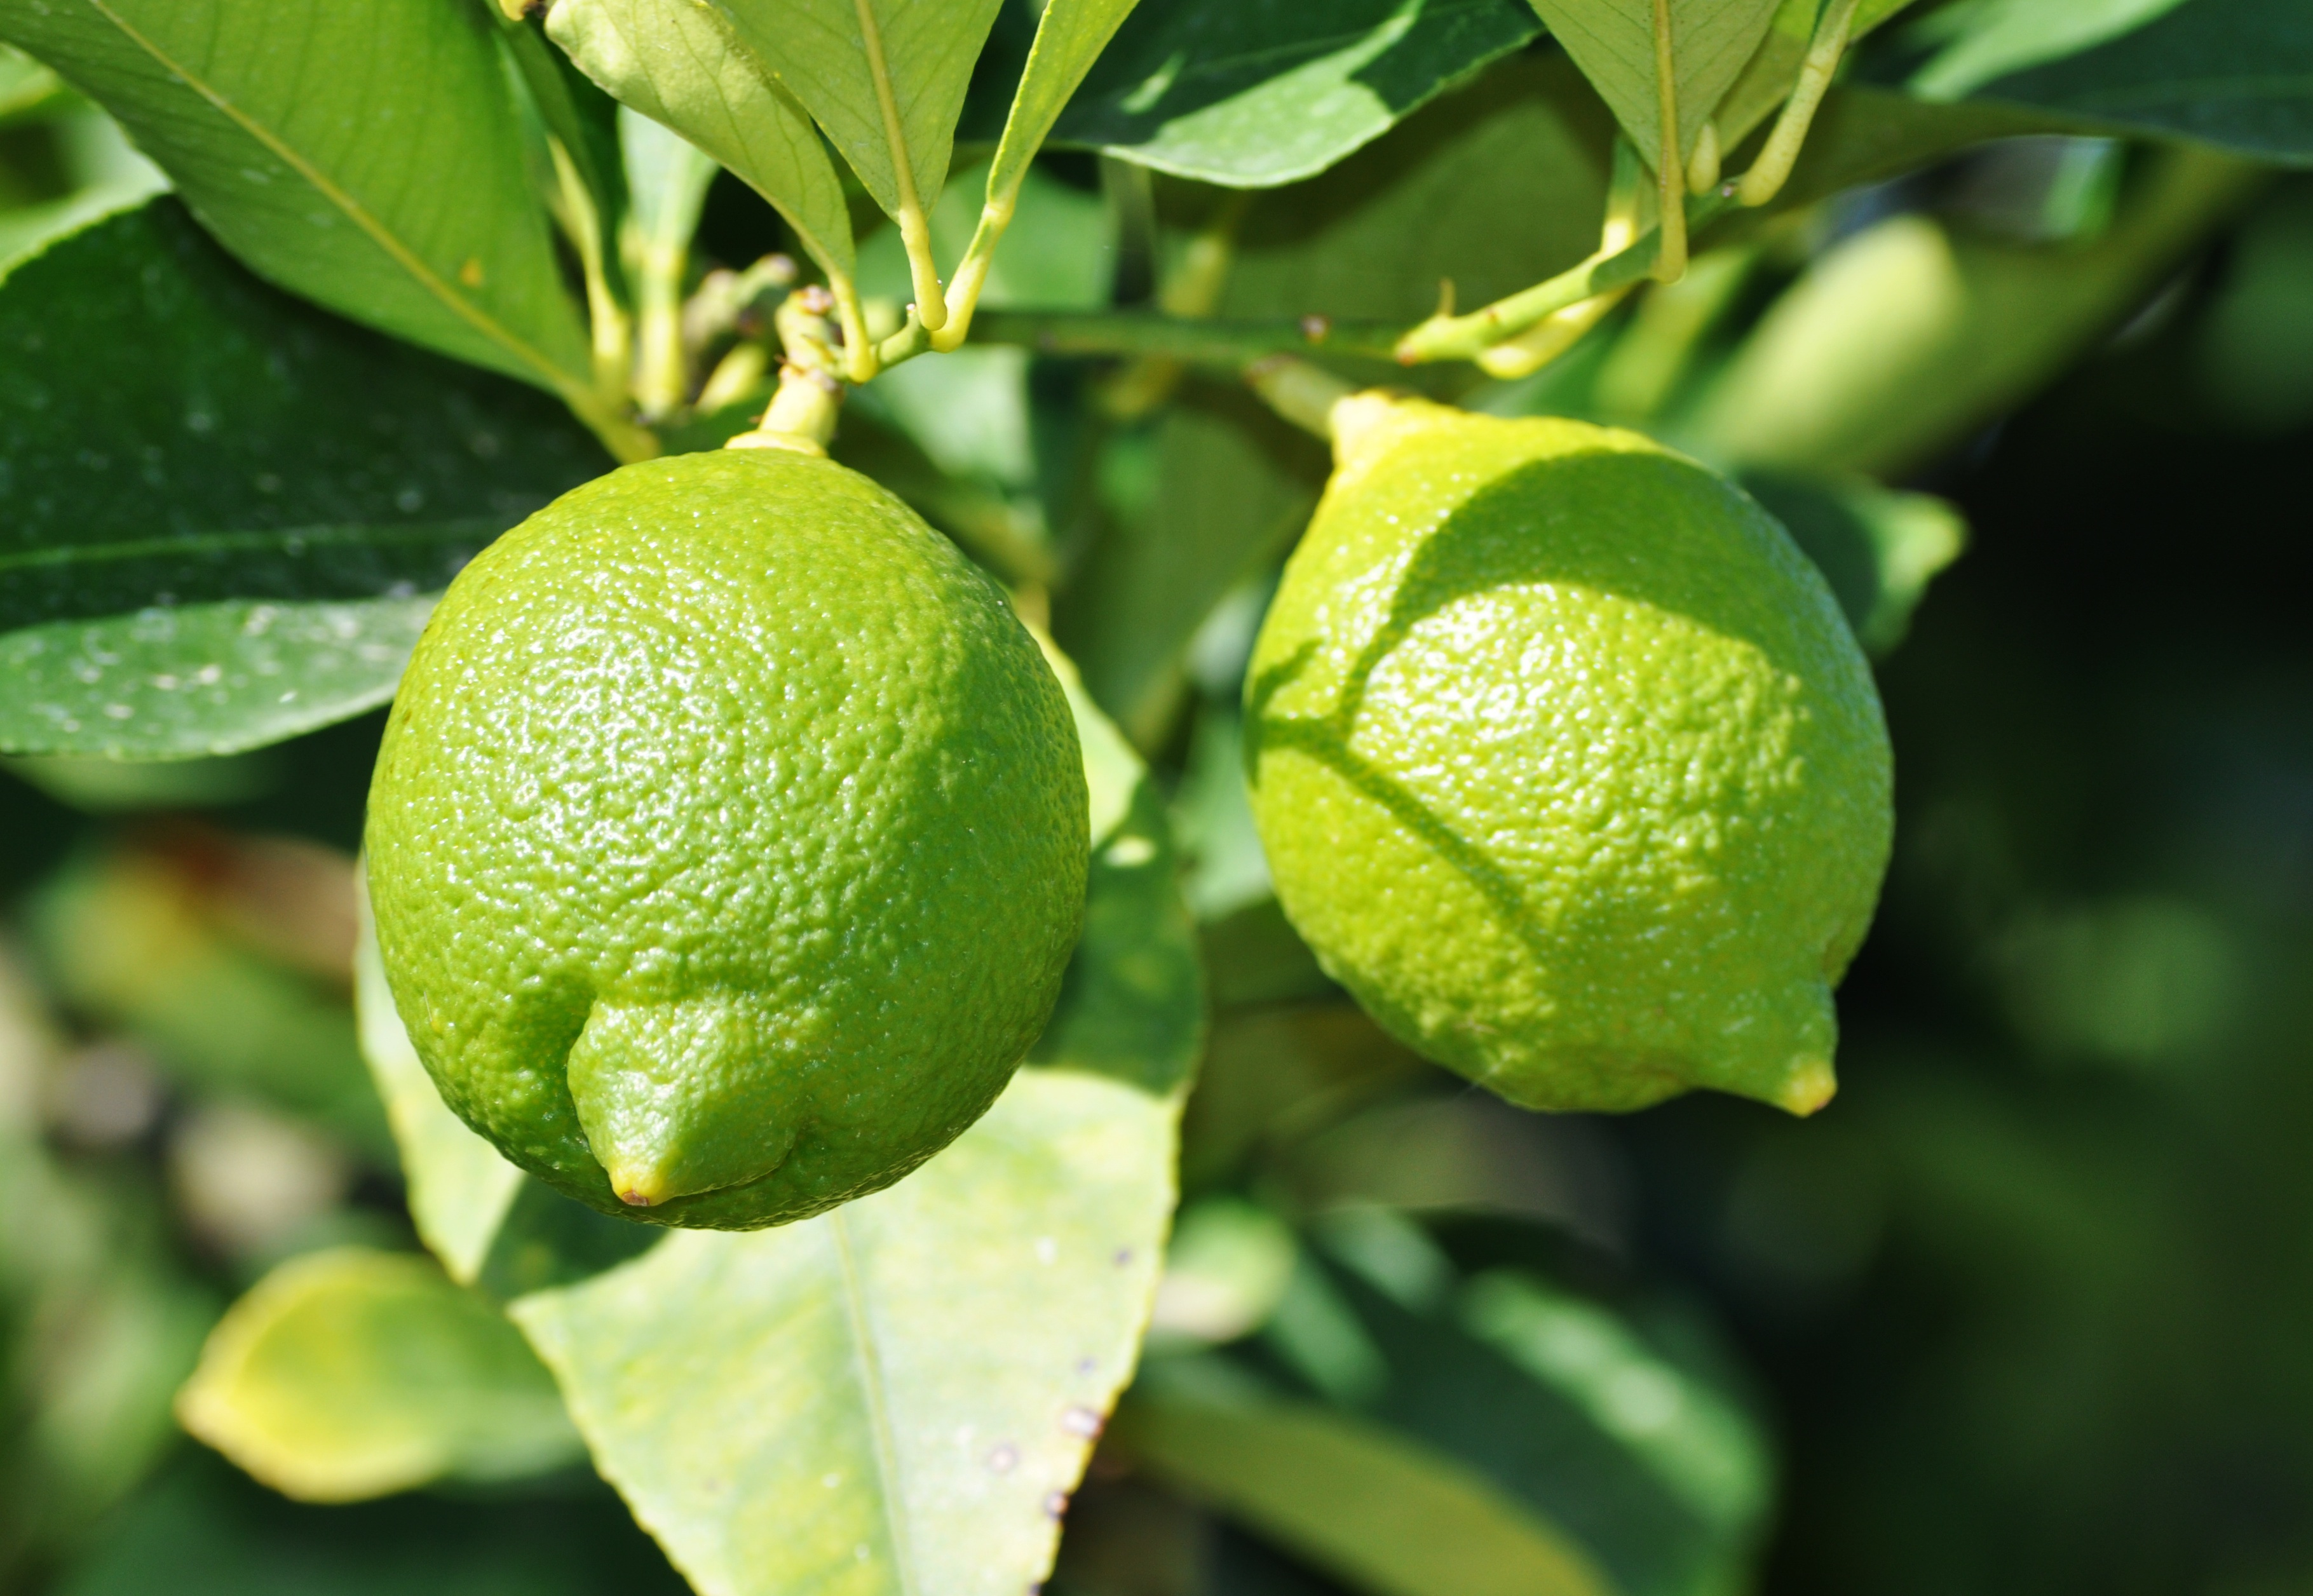 80976 download wallpaper Food, Lime, Branches, Fruit, Citrus screensavers and pictures for free